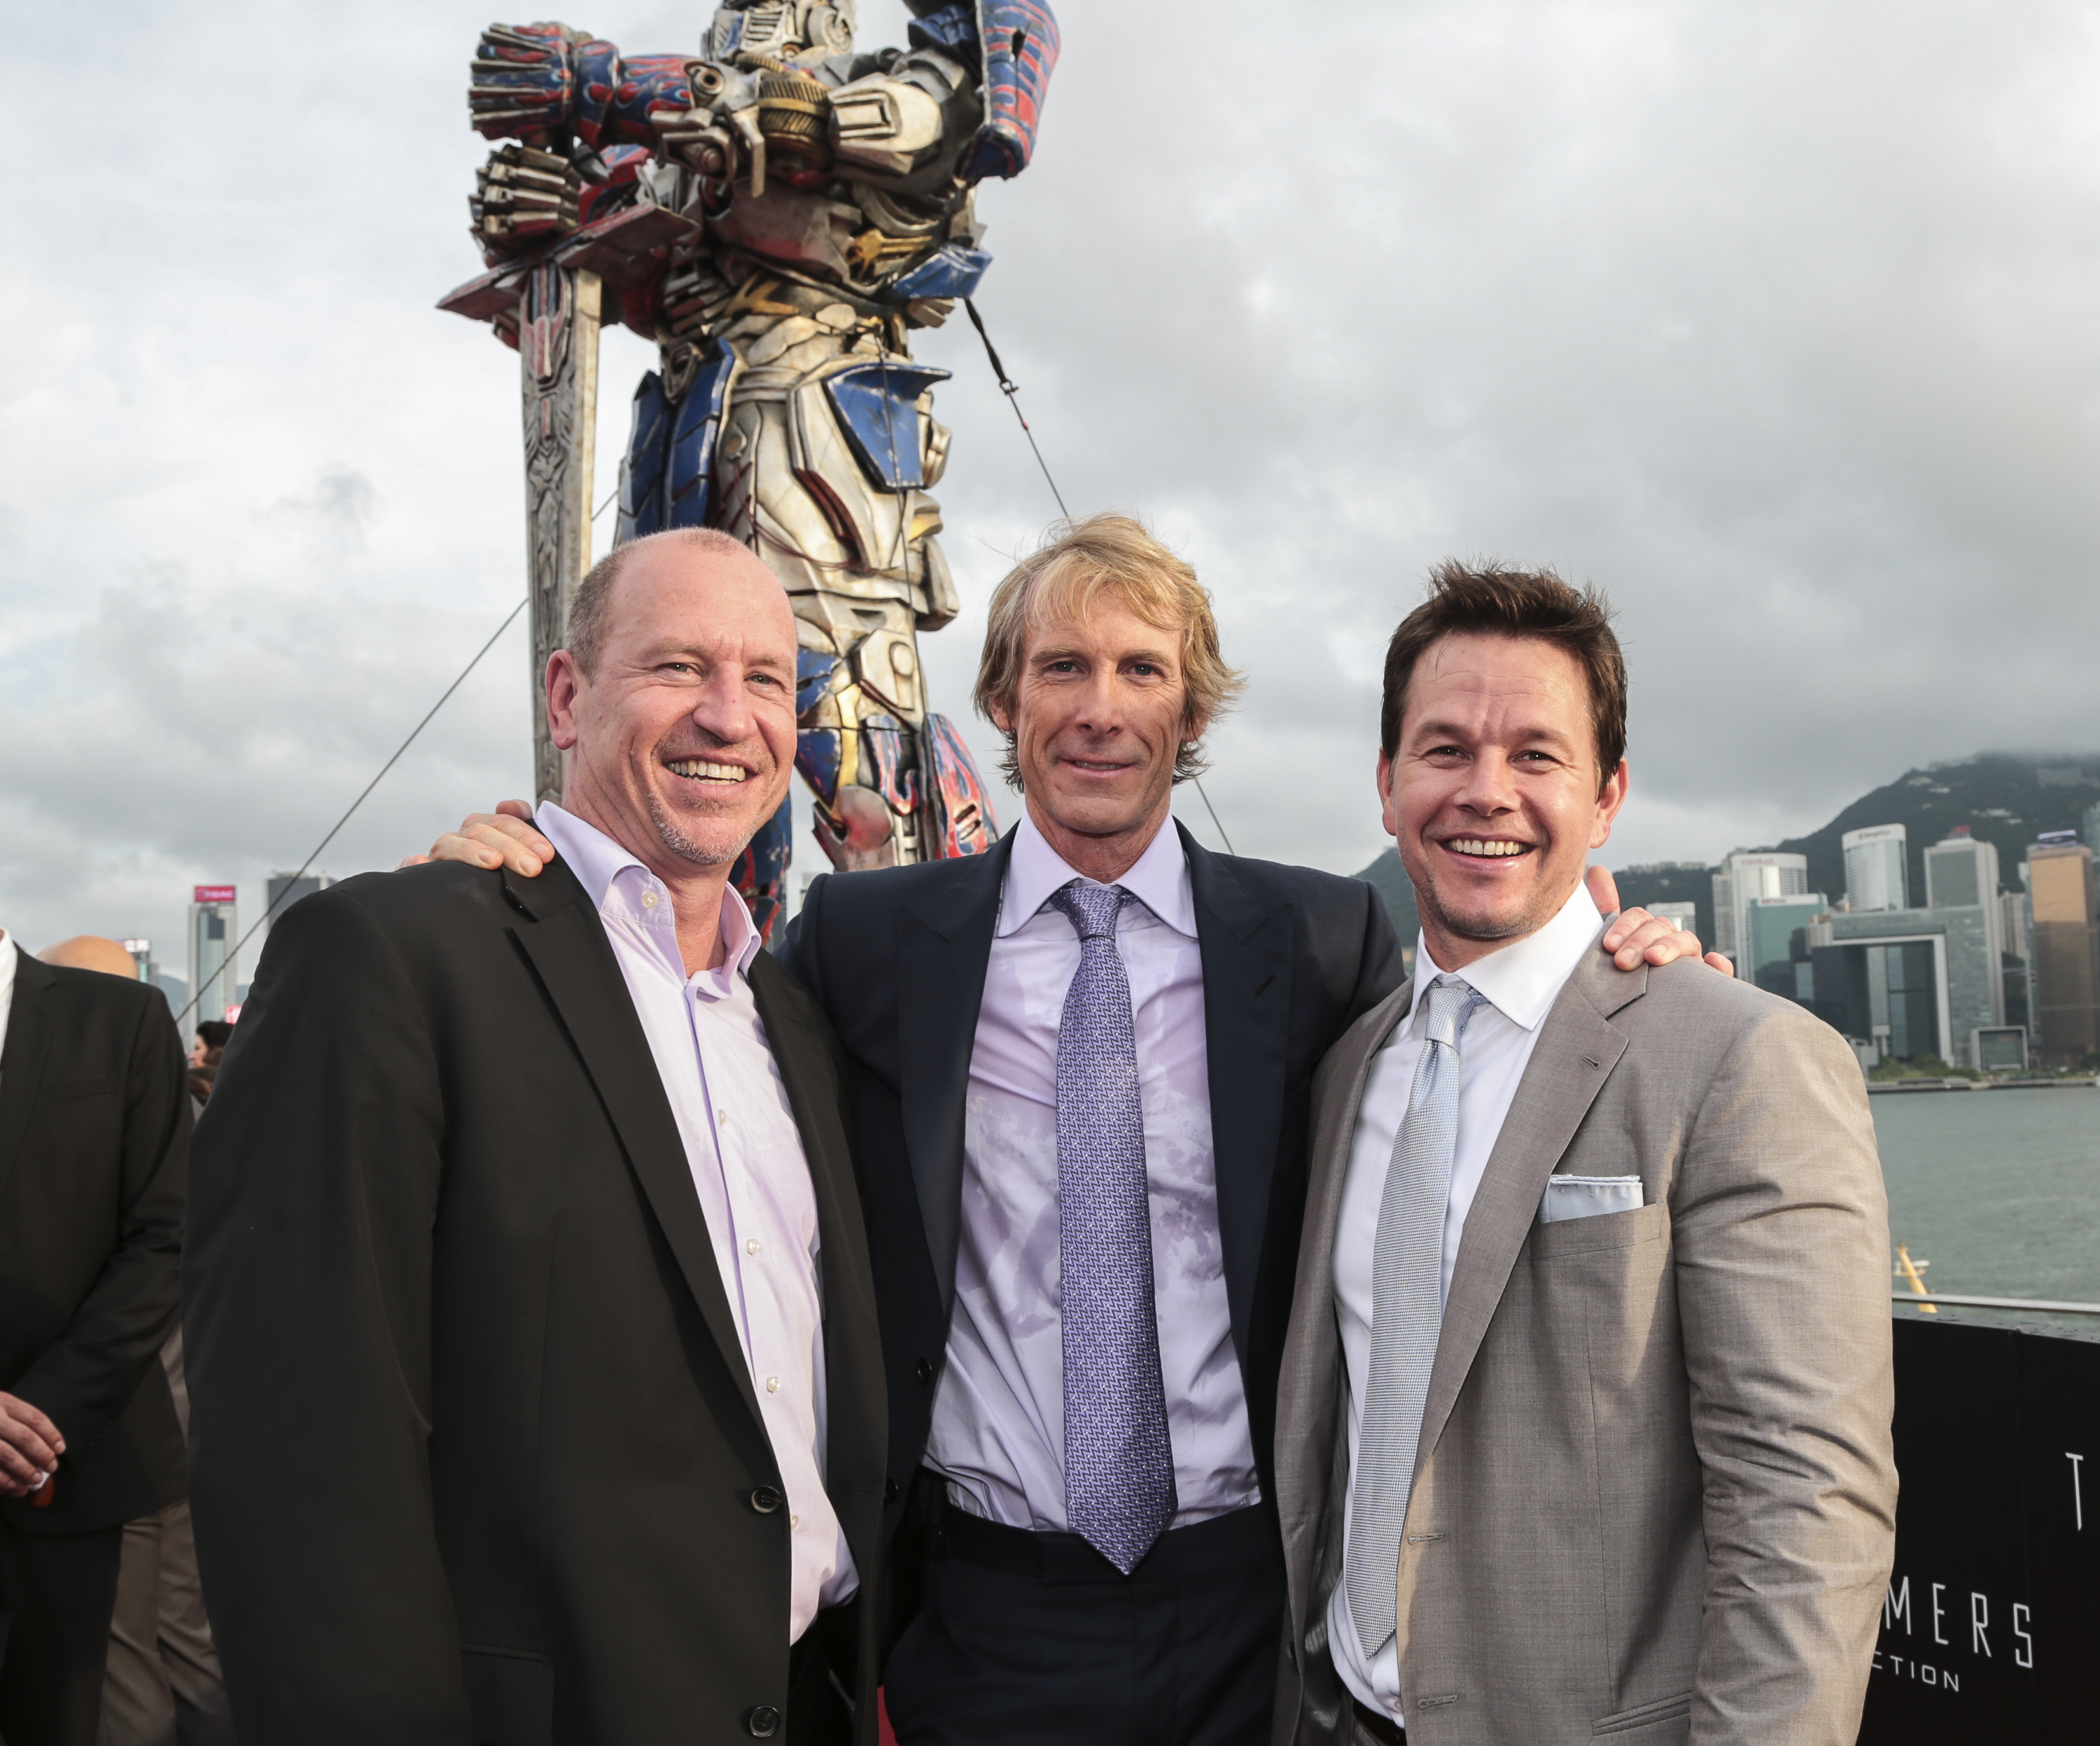 Rob Moore, Michael Bay and Mark Wahlberg arrive at the worldwide premiere screening of  Transformers: Age of Extinction at the  on June 19, 2014 in Hong Kong, Hong Kong.